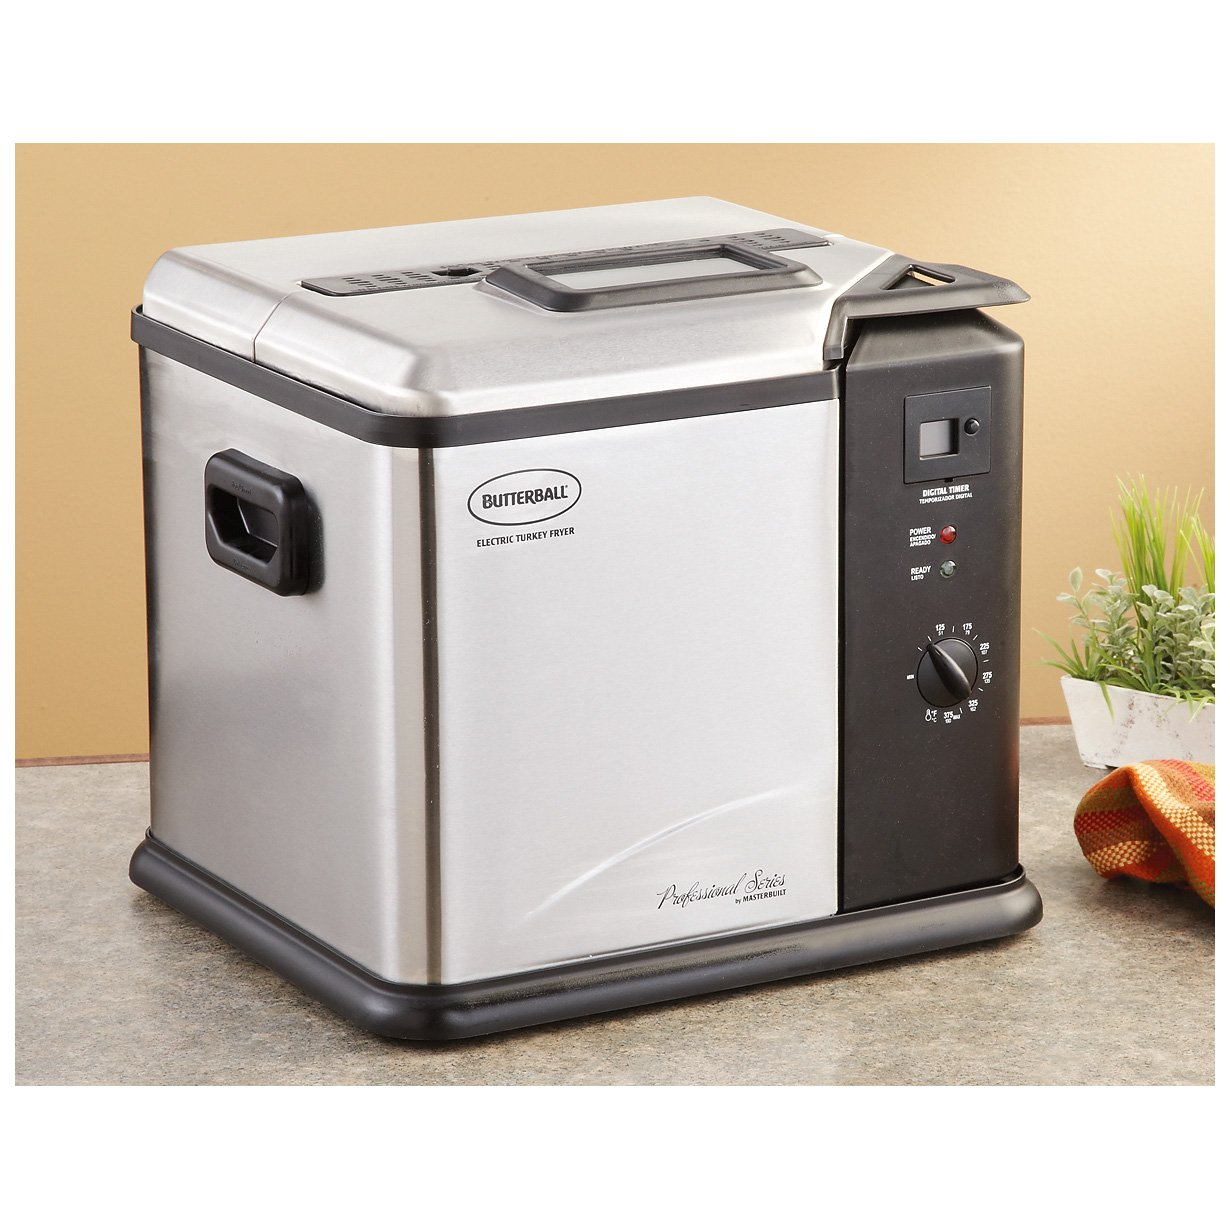 Butterball Turkey Fryer Xl Grills & Outdoor Cooking Patio, Lawn ...